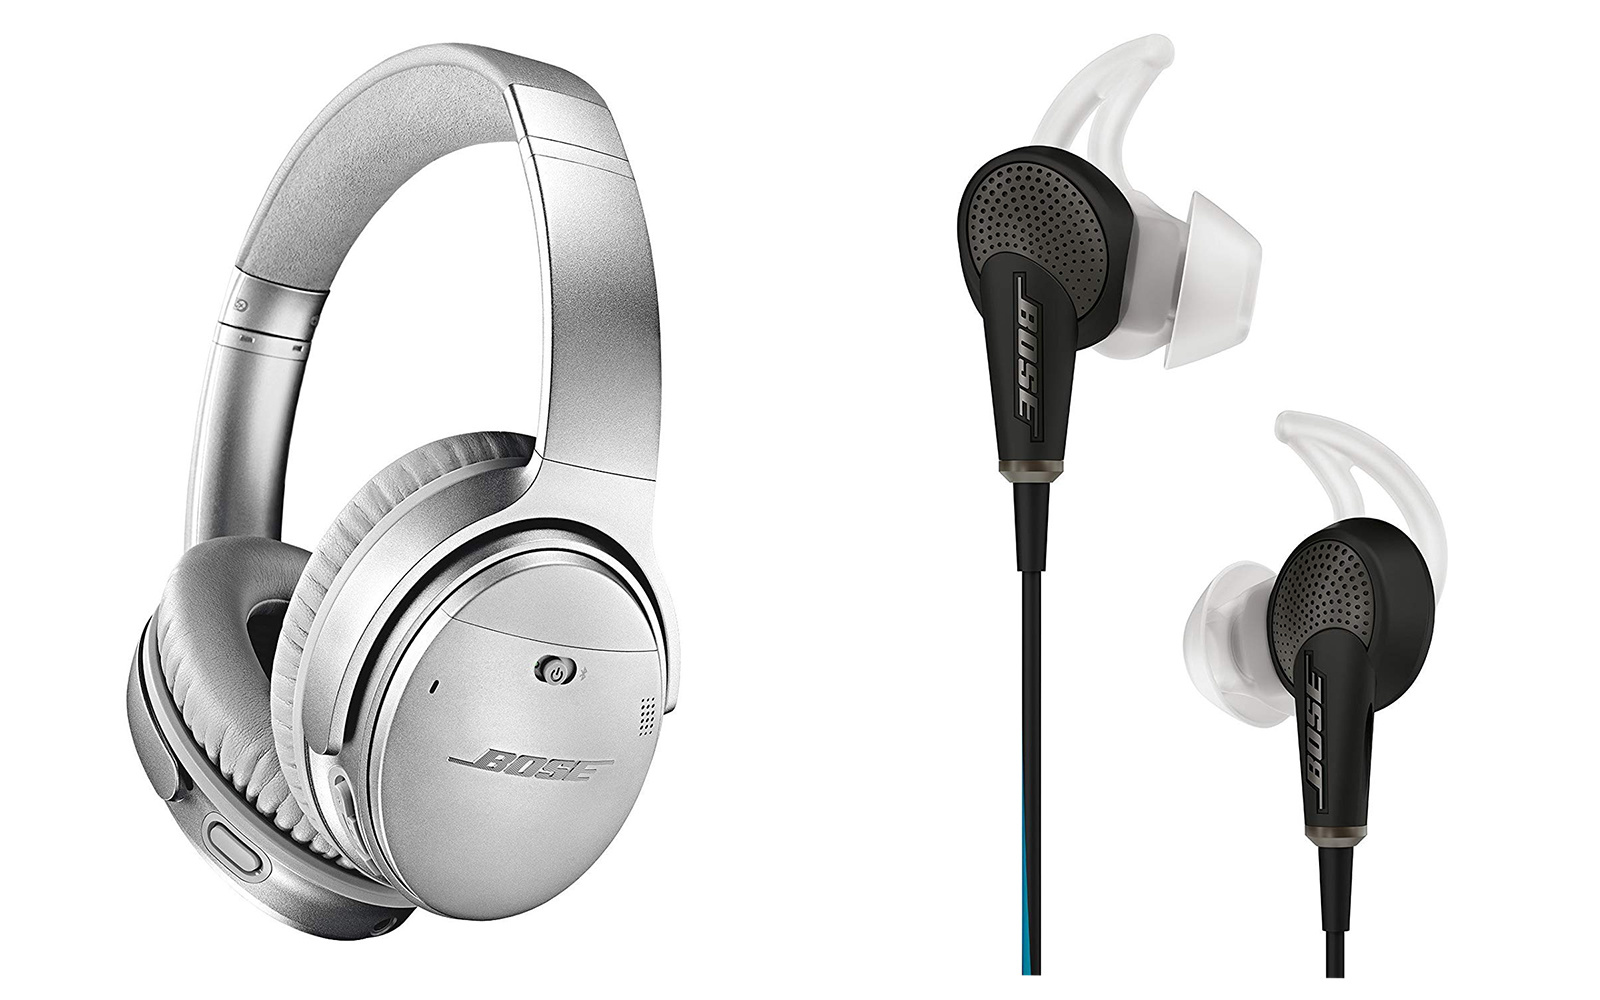 Bose QuietComfort Wireless Headphones